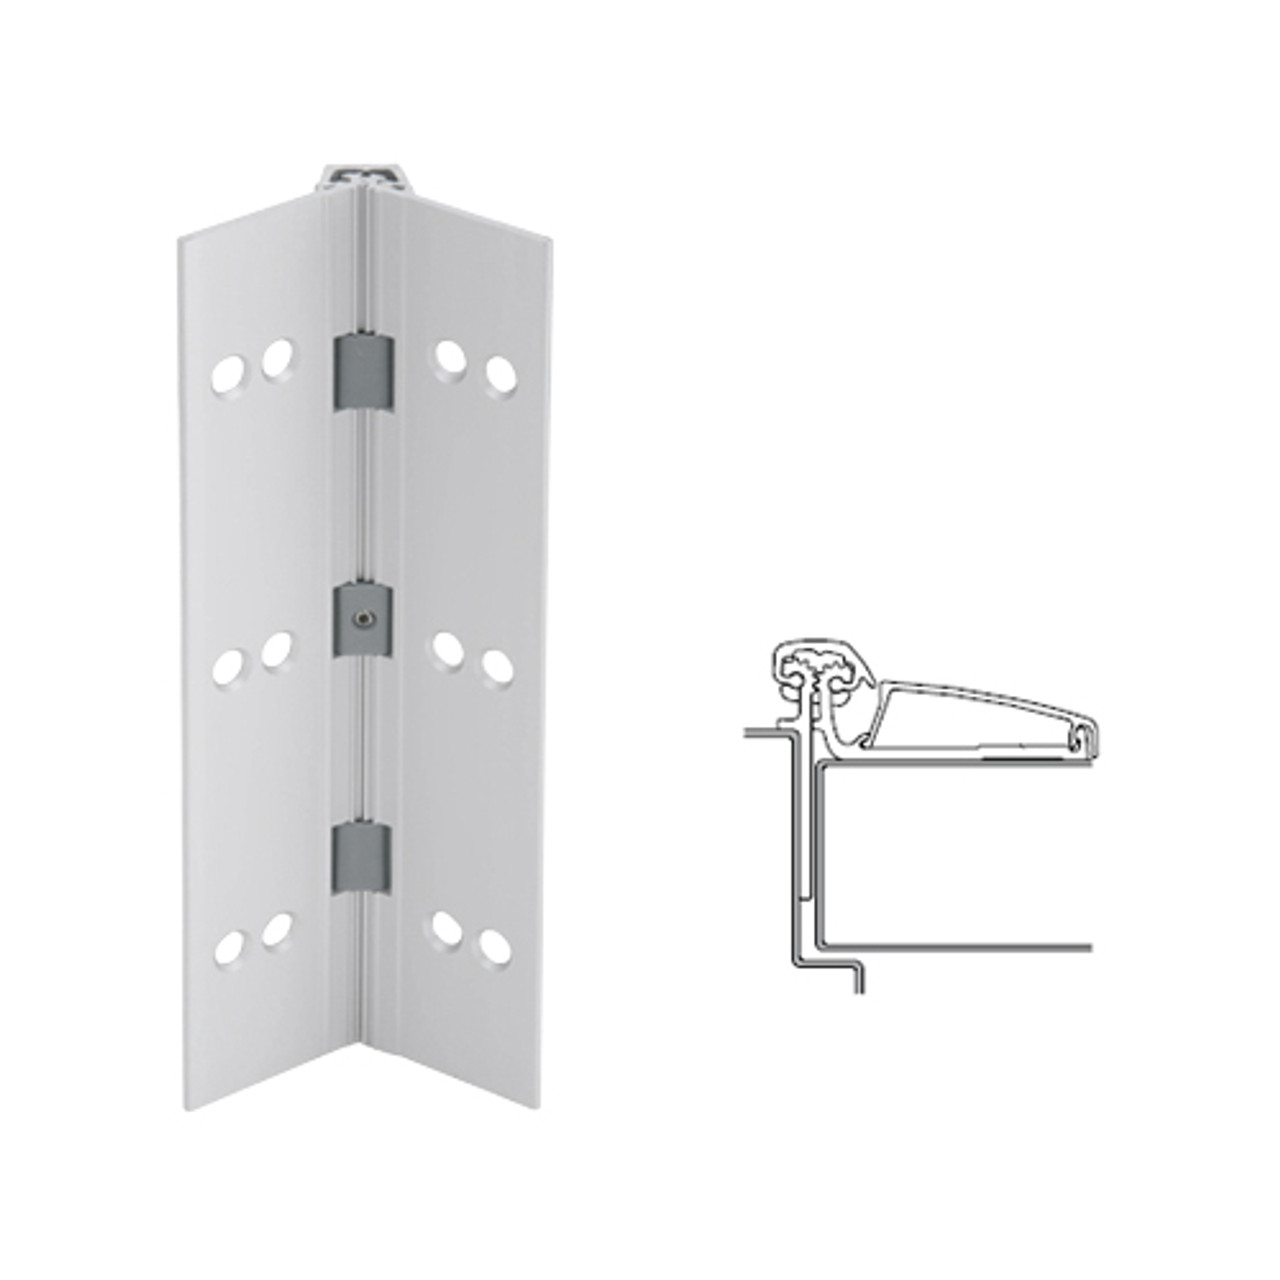 045XY-US28-85-SECWDHM IVES Adjustable Half Surface Continuous Geared Hinges with Security Screws - Hex Pin Drive in Satin Aluminum